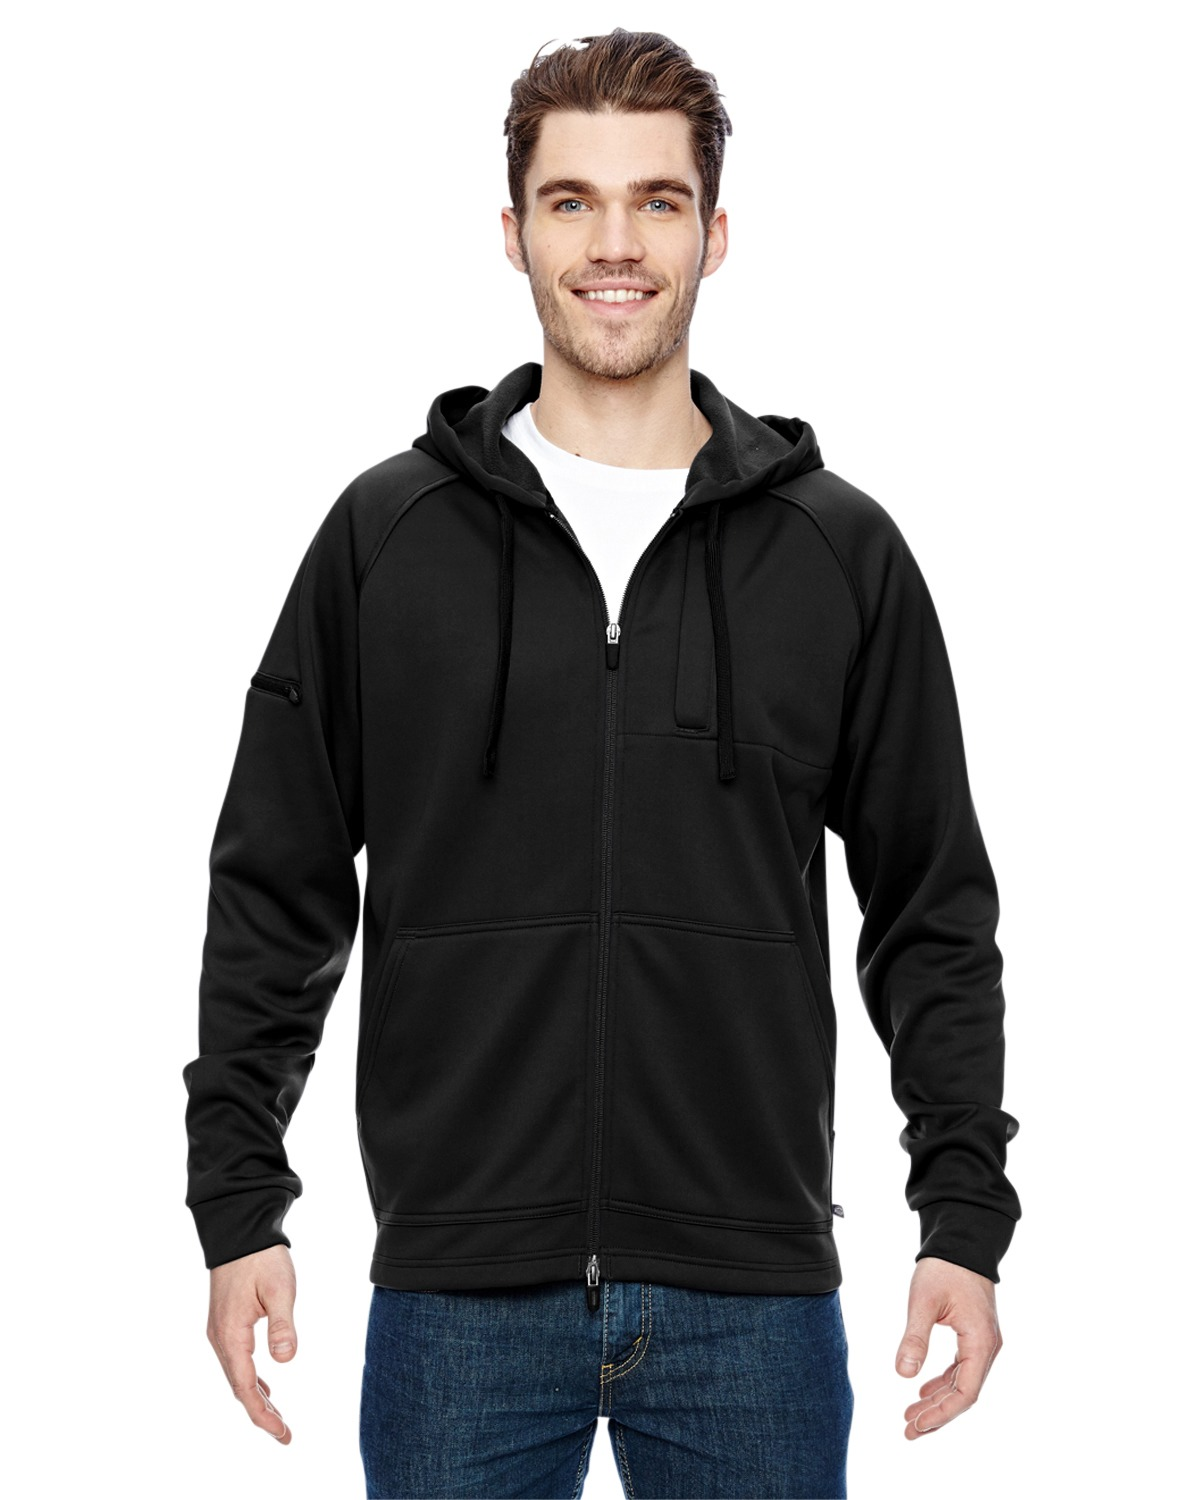 Dickies LJ536 Men's 7.4 oz. Tactical Full Zip Fleece Jacket at GotApparel